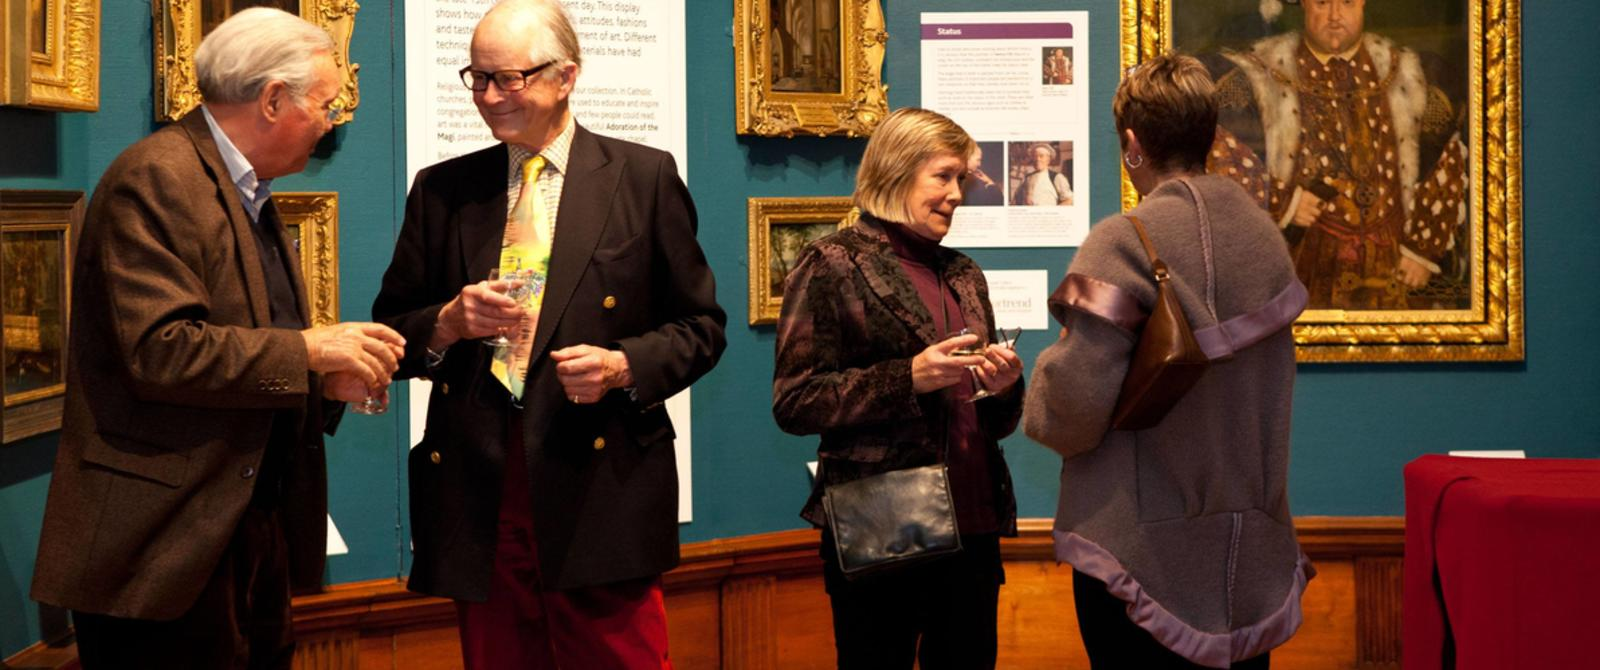 Image: Friends event at the Gallery